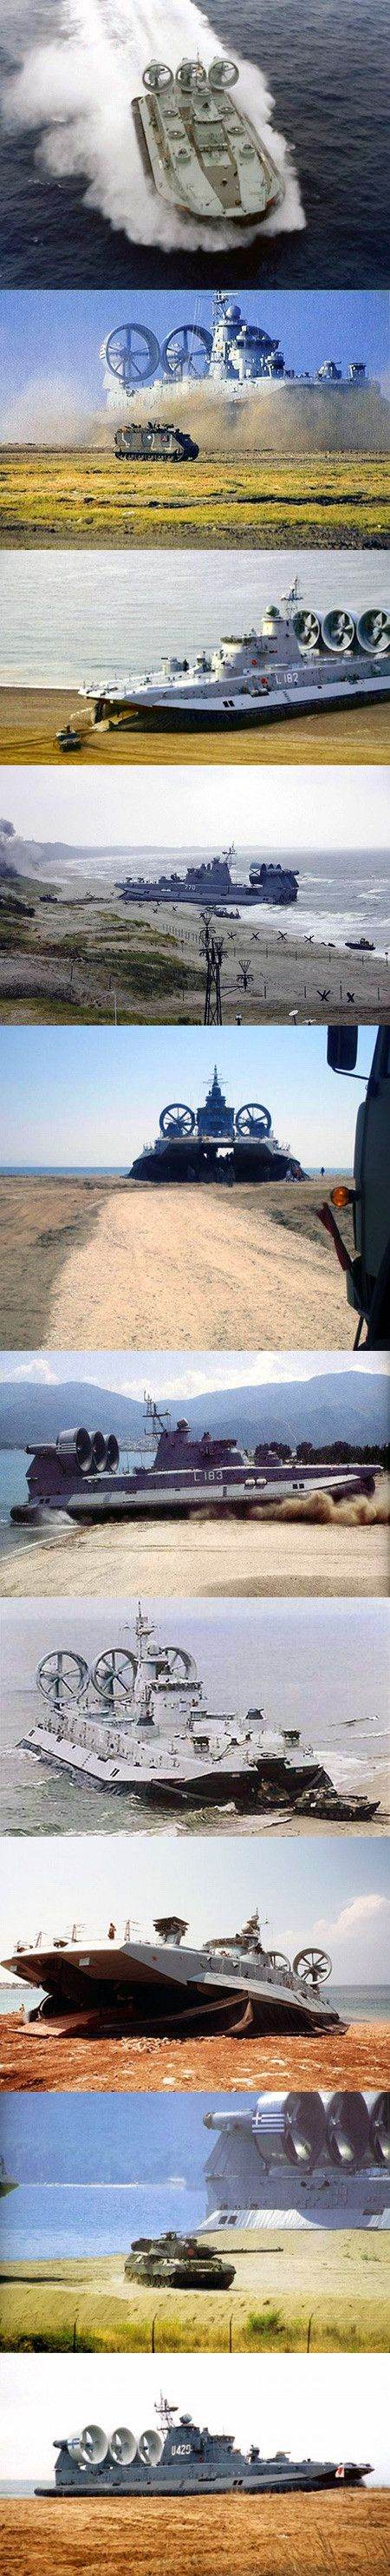 10 Mind-Blowing Pictures, Videos of a Zubr-class Hovercraft, the World's Largest - TechEBlog